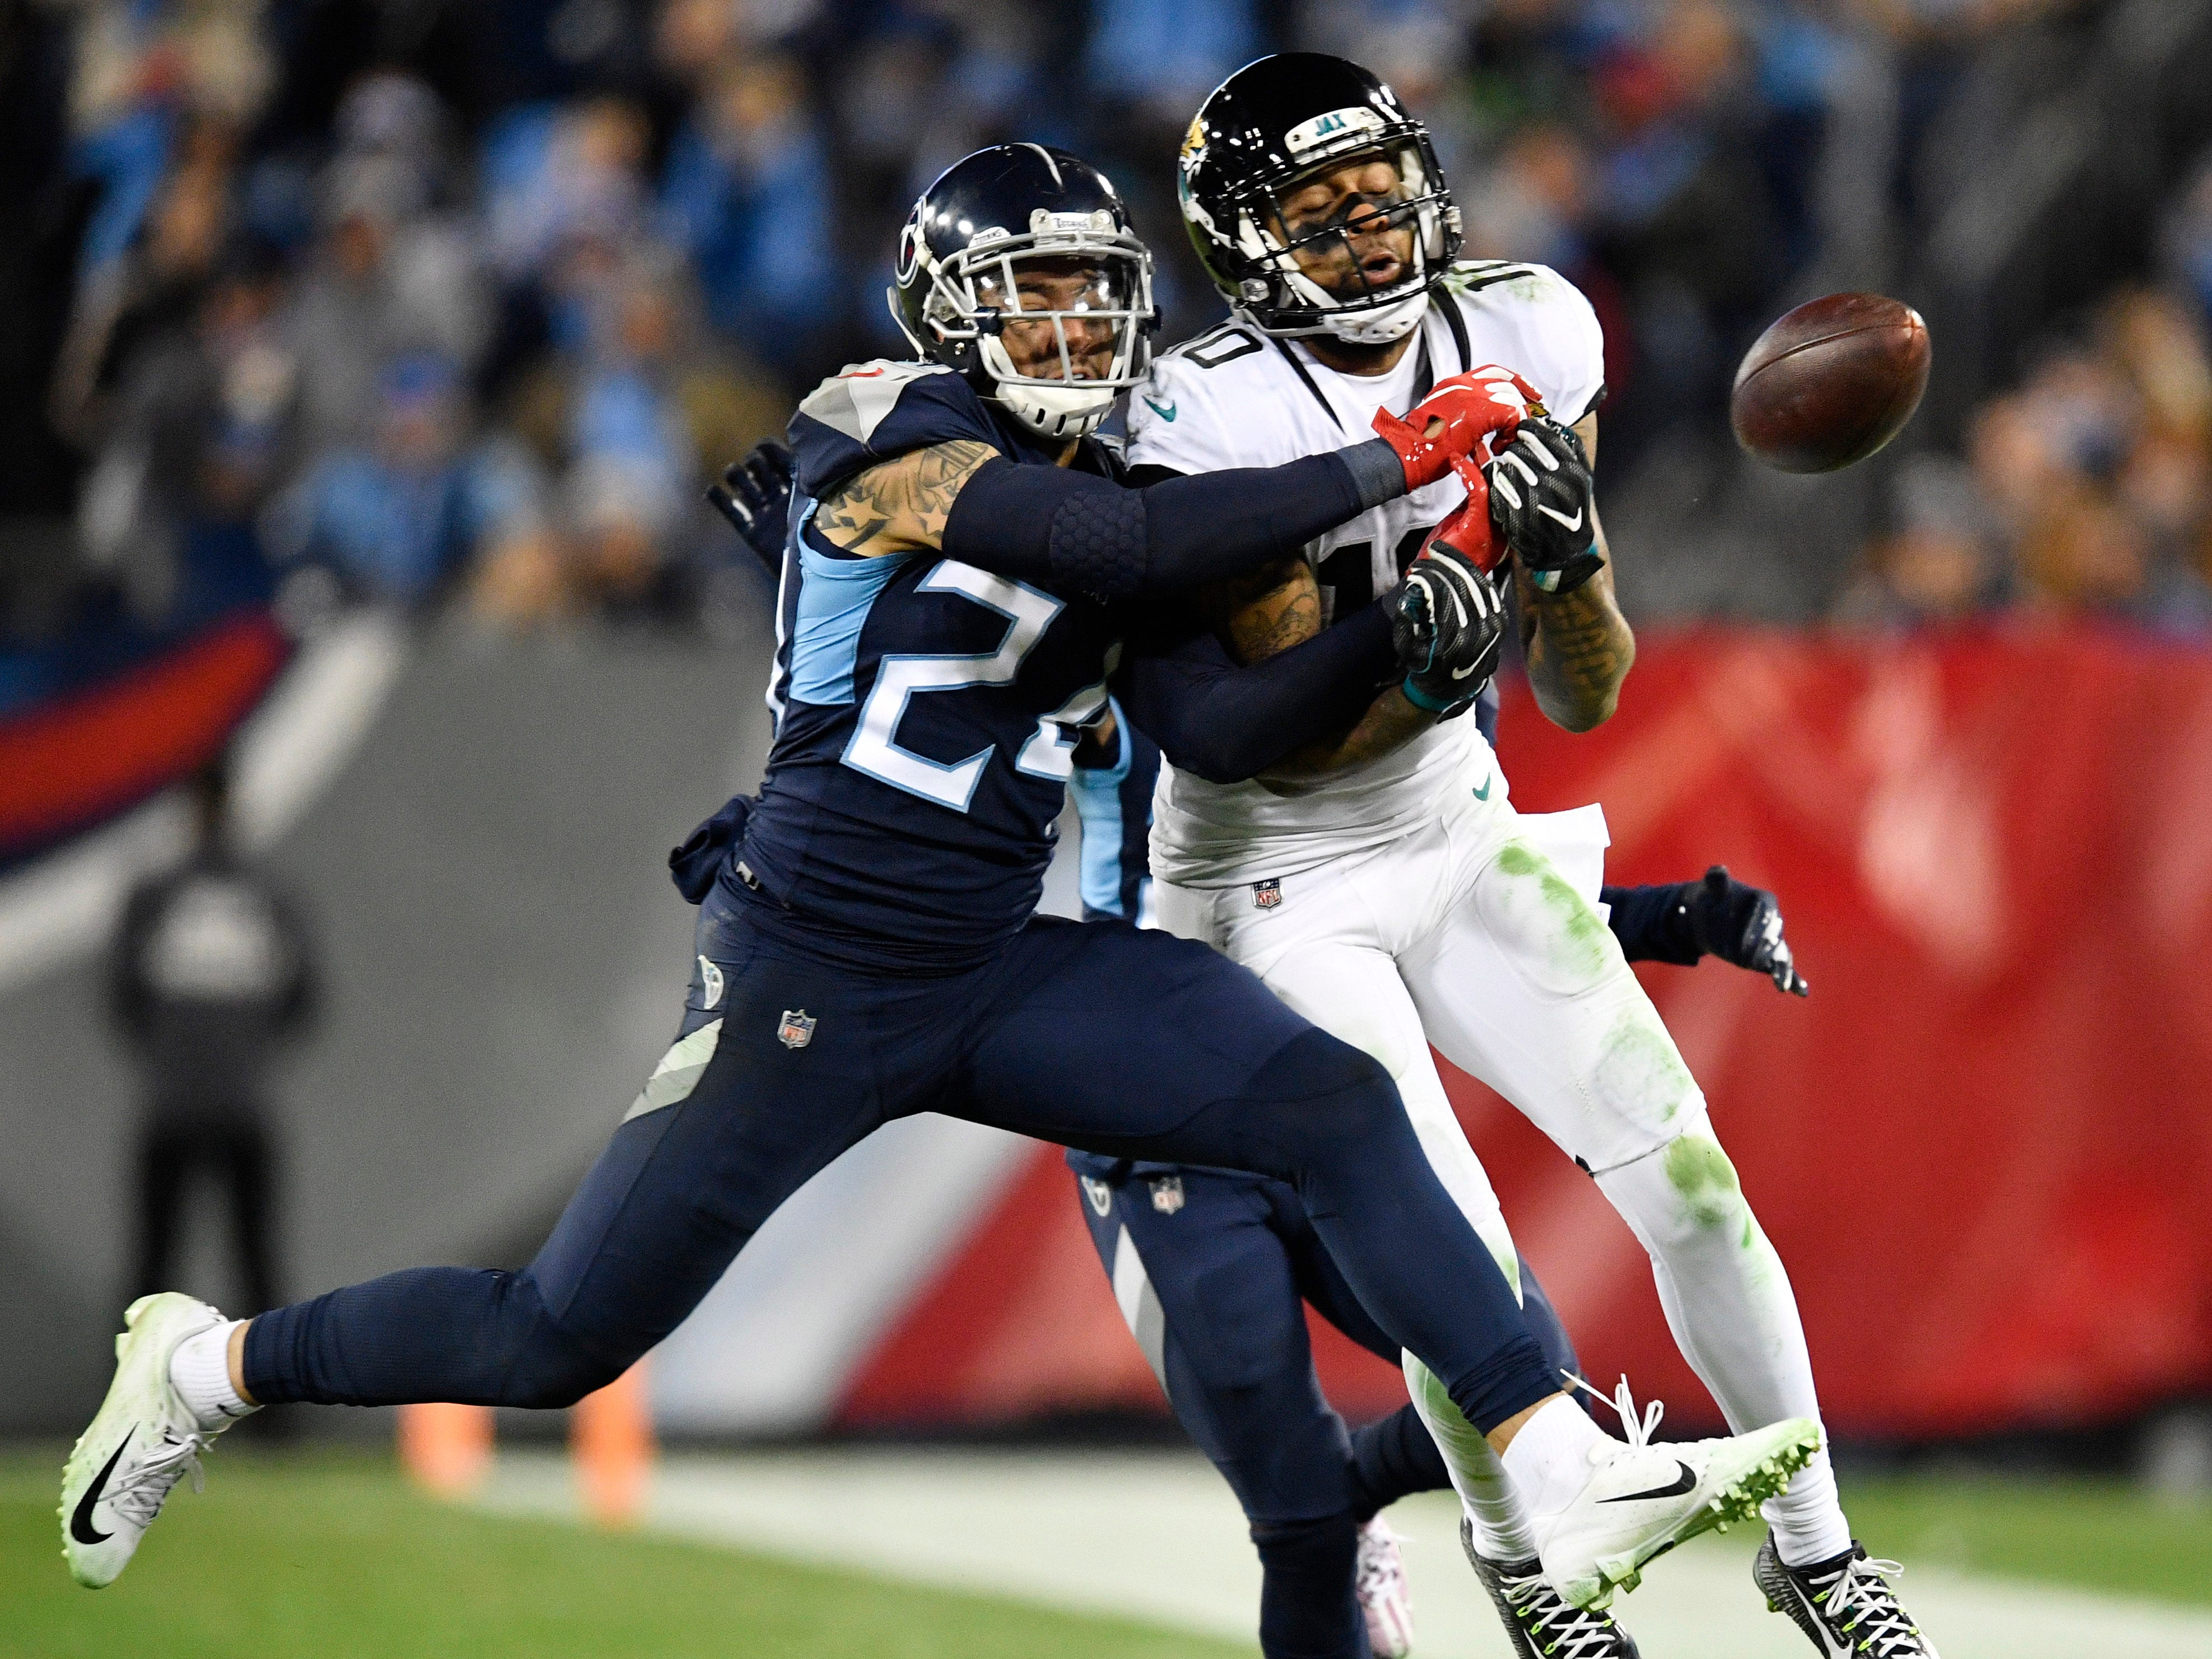 Titans safety Kenny Vaccaro (24) breaks up a pass intended for Jaguars wide receiver Donte Moncrief (10) in the third quarter at Nissan Stadium Thursday, Dec. 6, 2018, in Nashville, Tenn.